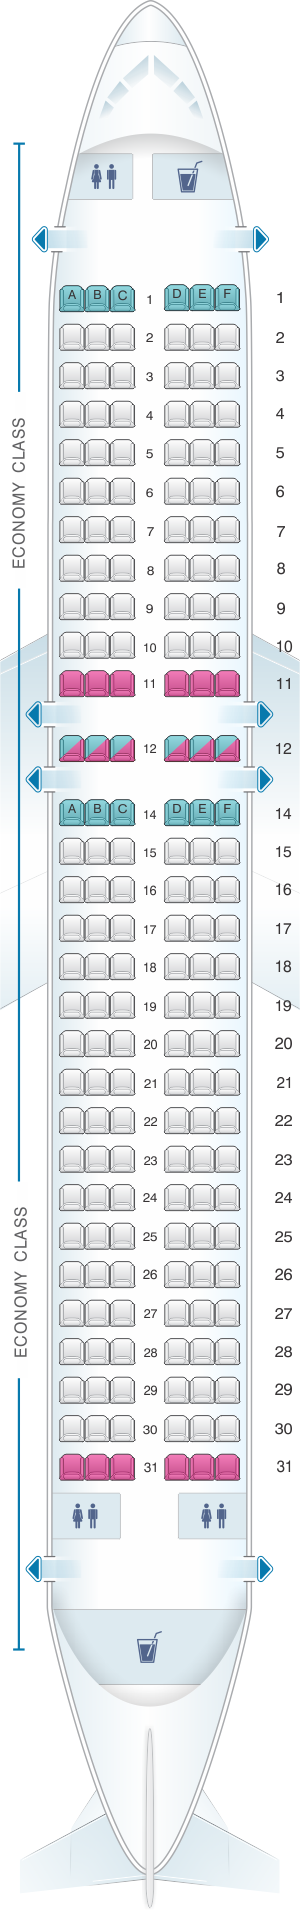 Seat map for Vueling Airbus A320